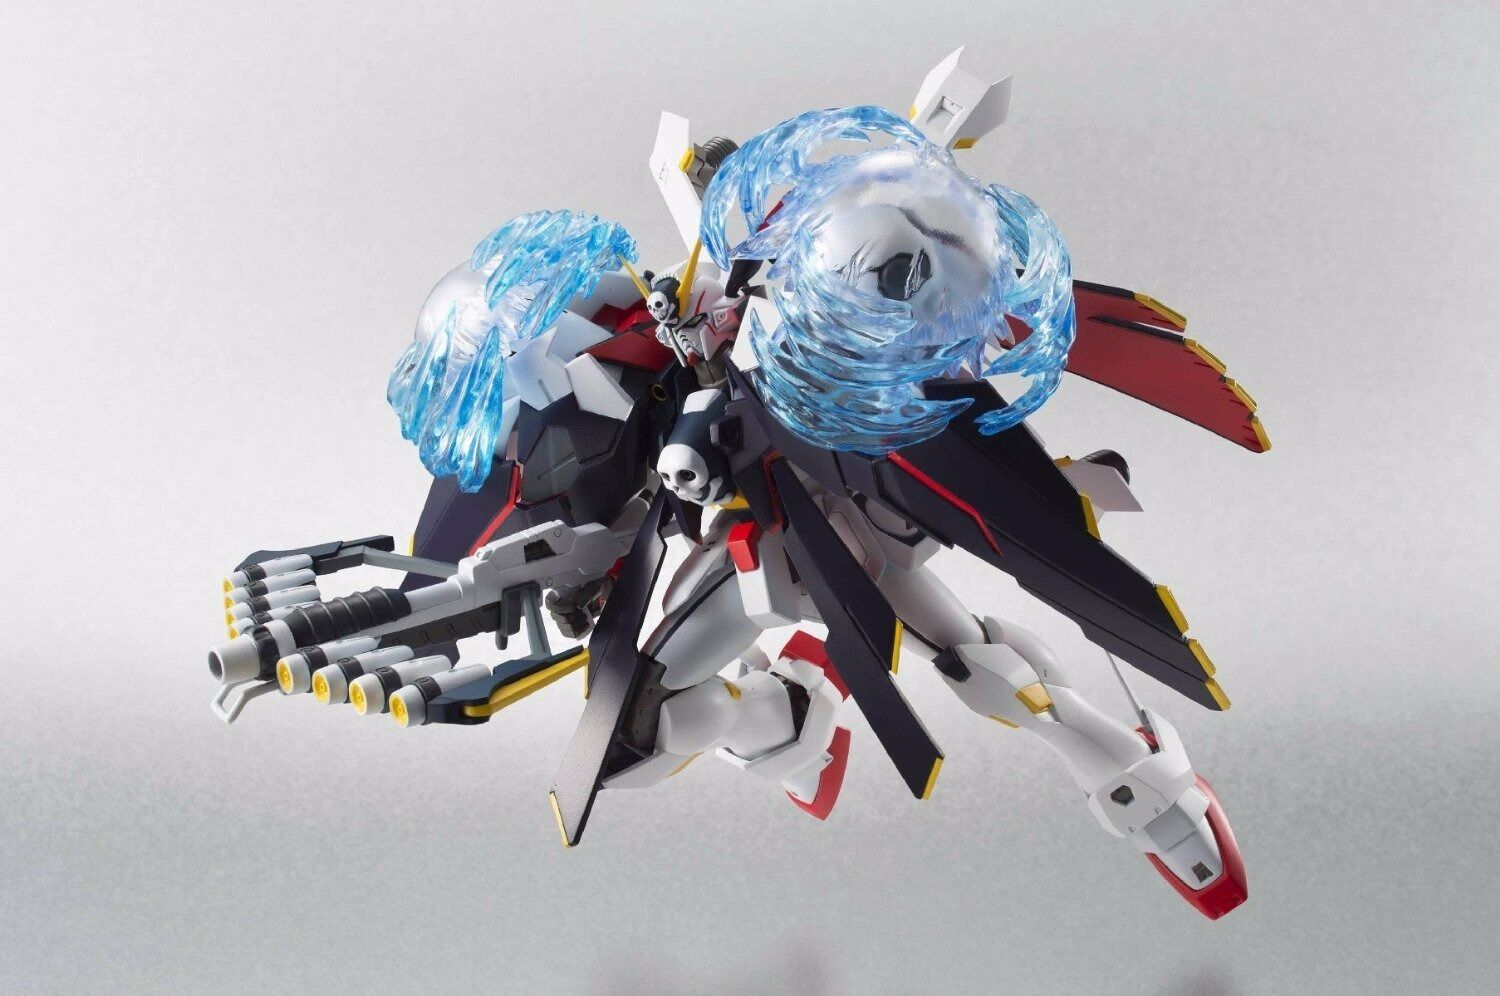 ROBOT SPIRITS Side MS CROSSBONE GUNDAM X-1 FULL CLOTH Action Action Action Figure BANDAI japan 8e4d8d